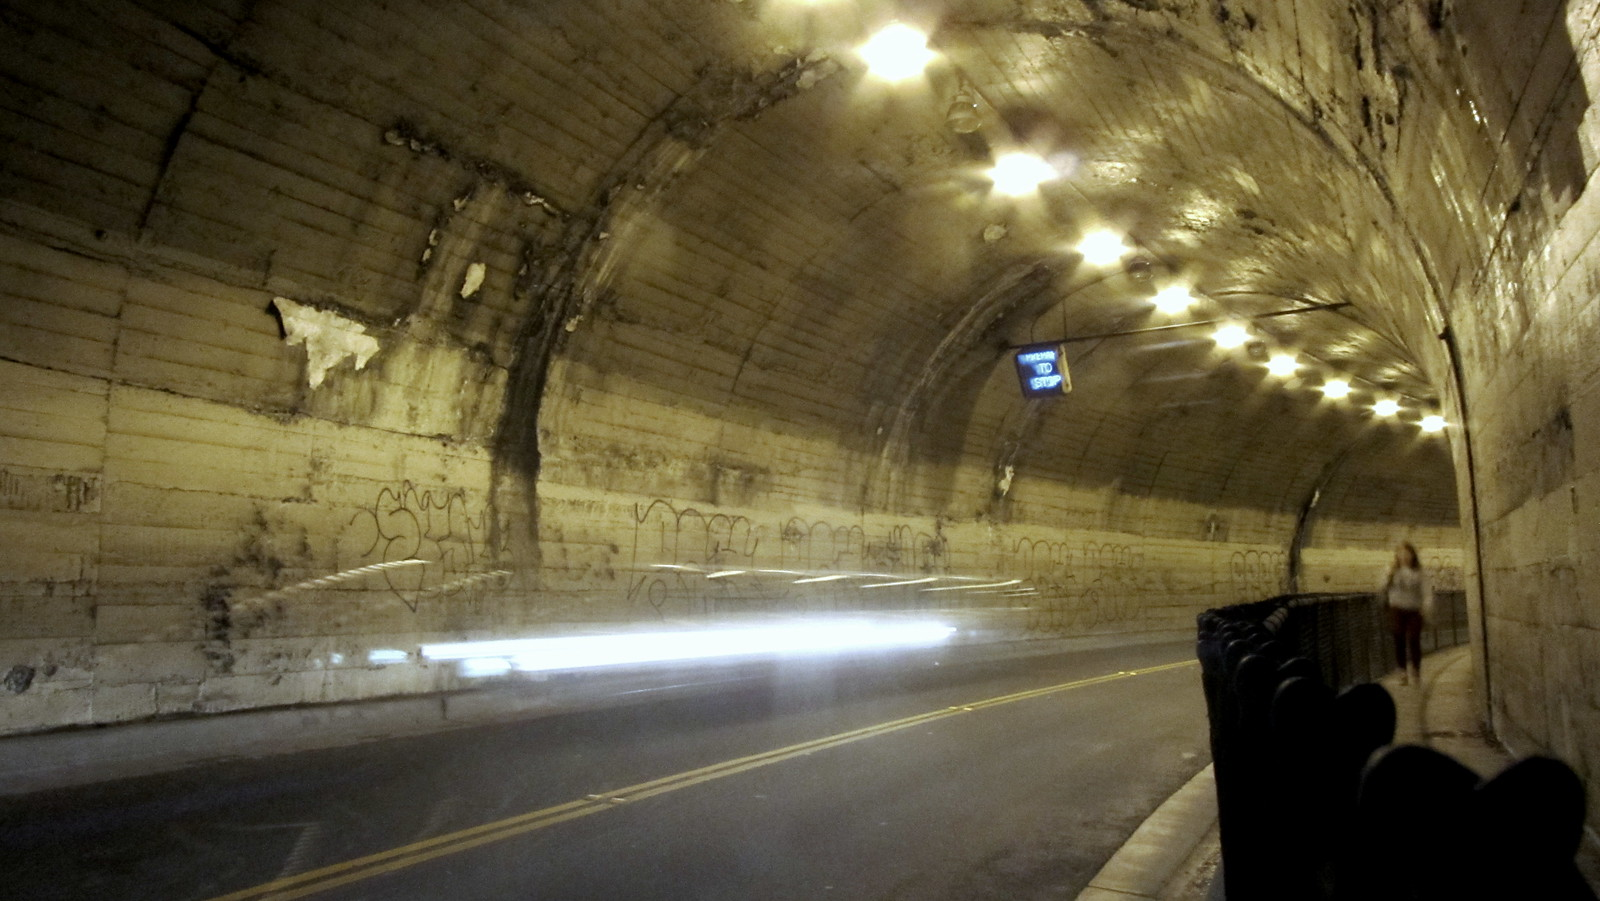 Northbrae tunnel   by TJ Gehling